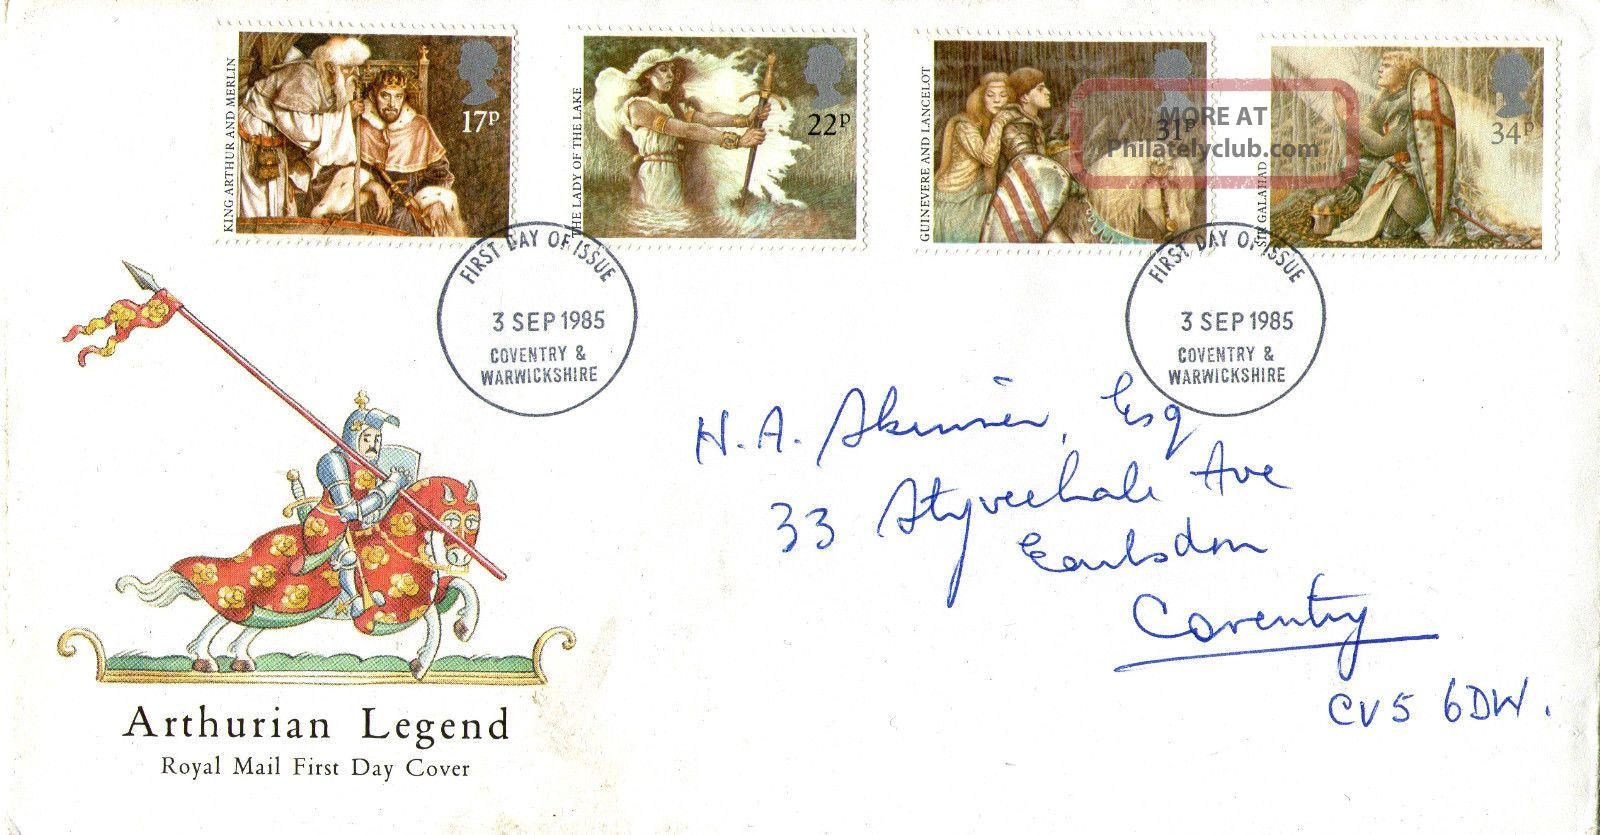 3 September 1985 Arthurian Legend Royal Mail First Day Cover Coventry Fdi Topical Stamps photo